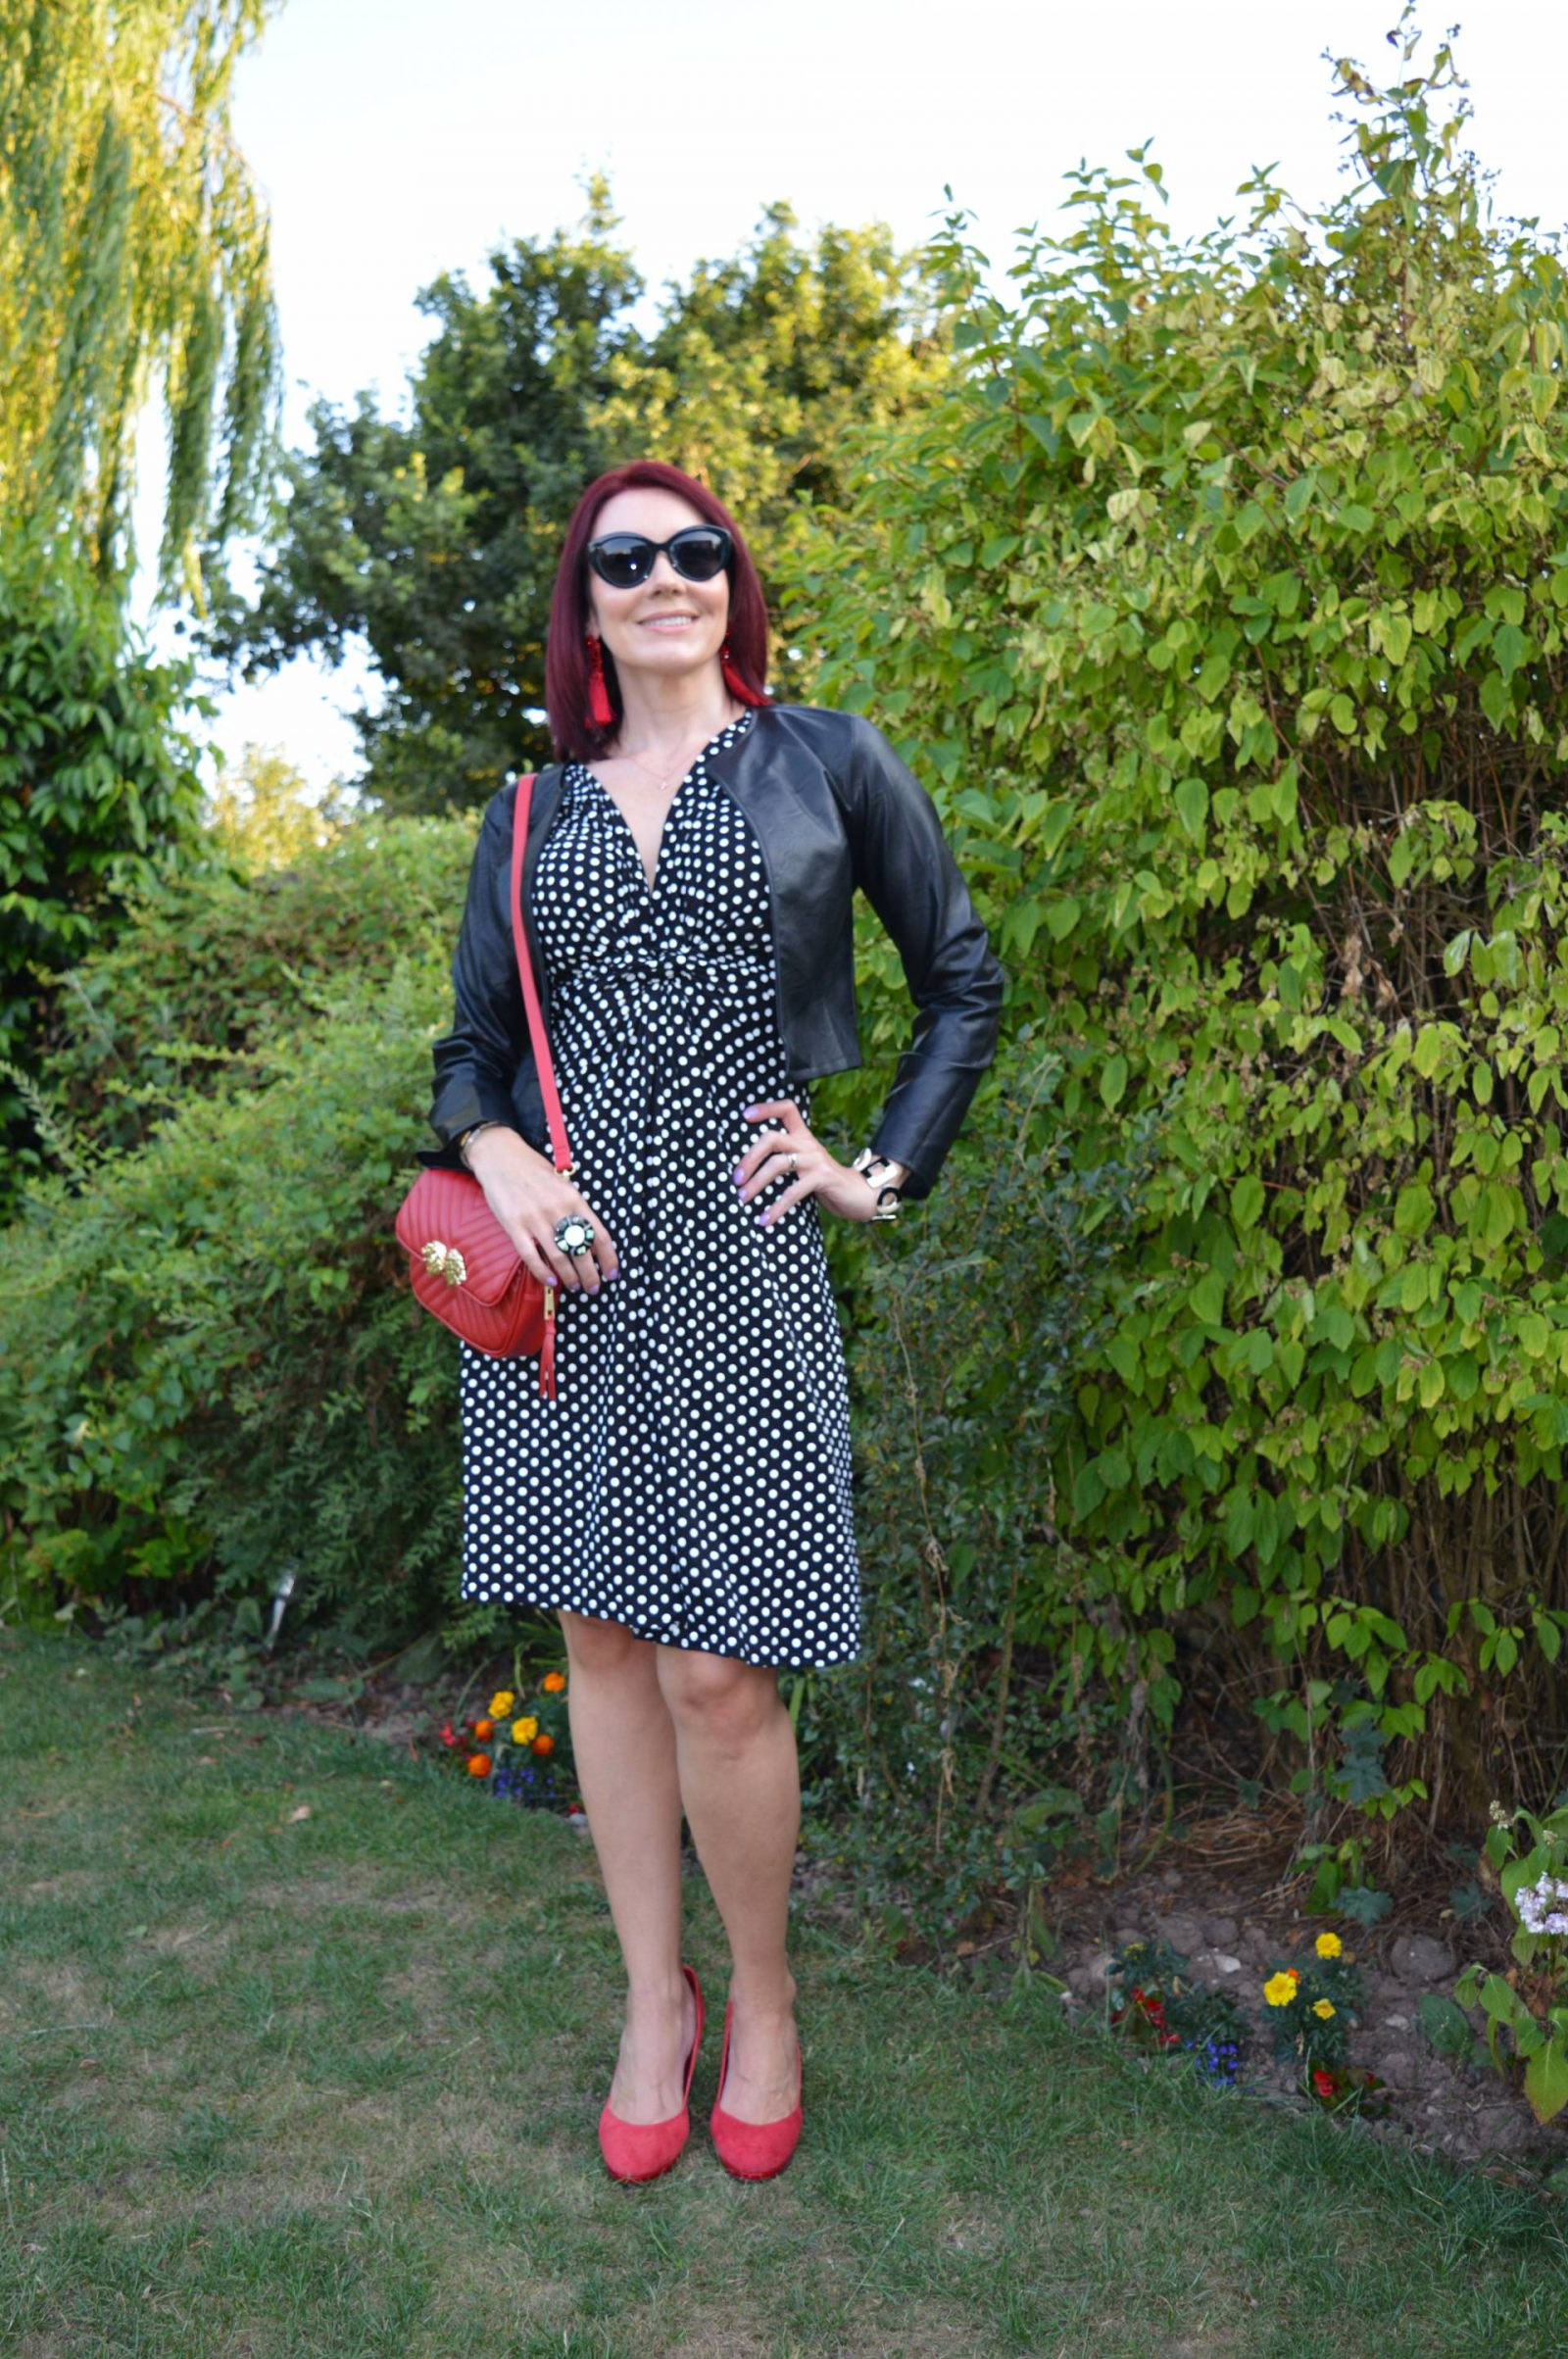 Krisp Black and white polka dot dress